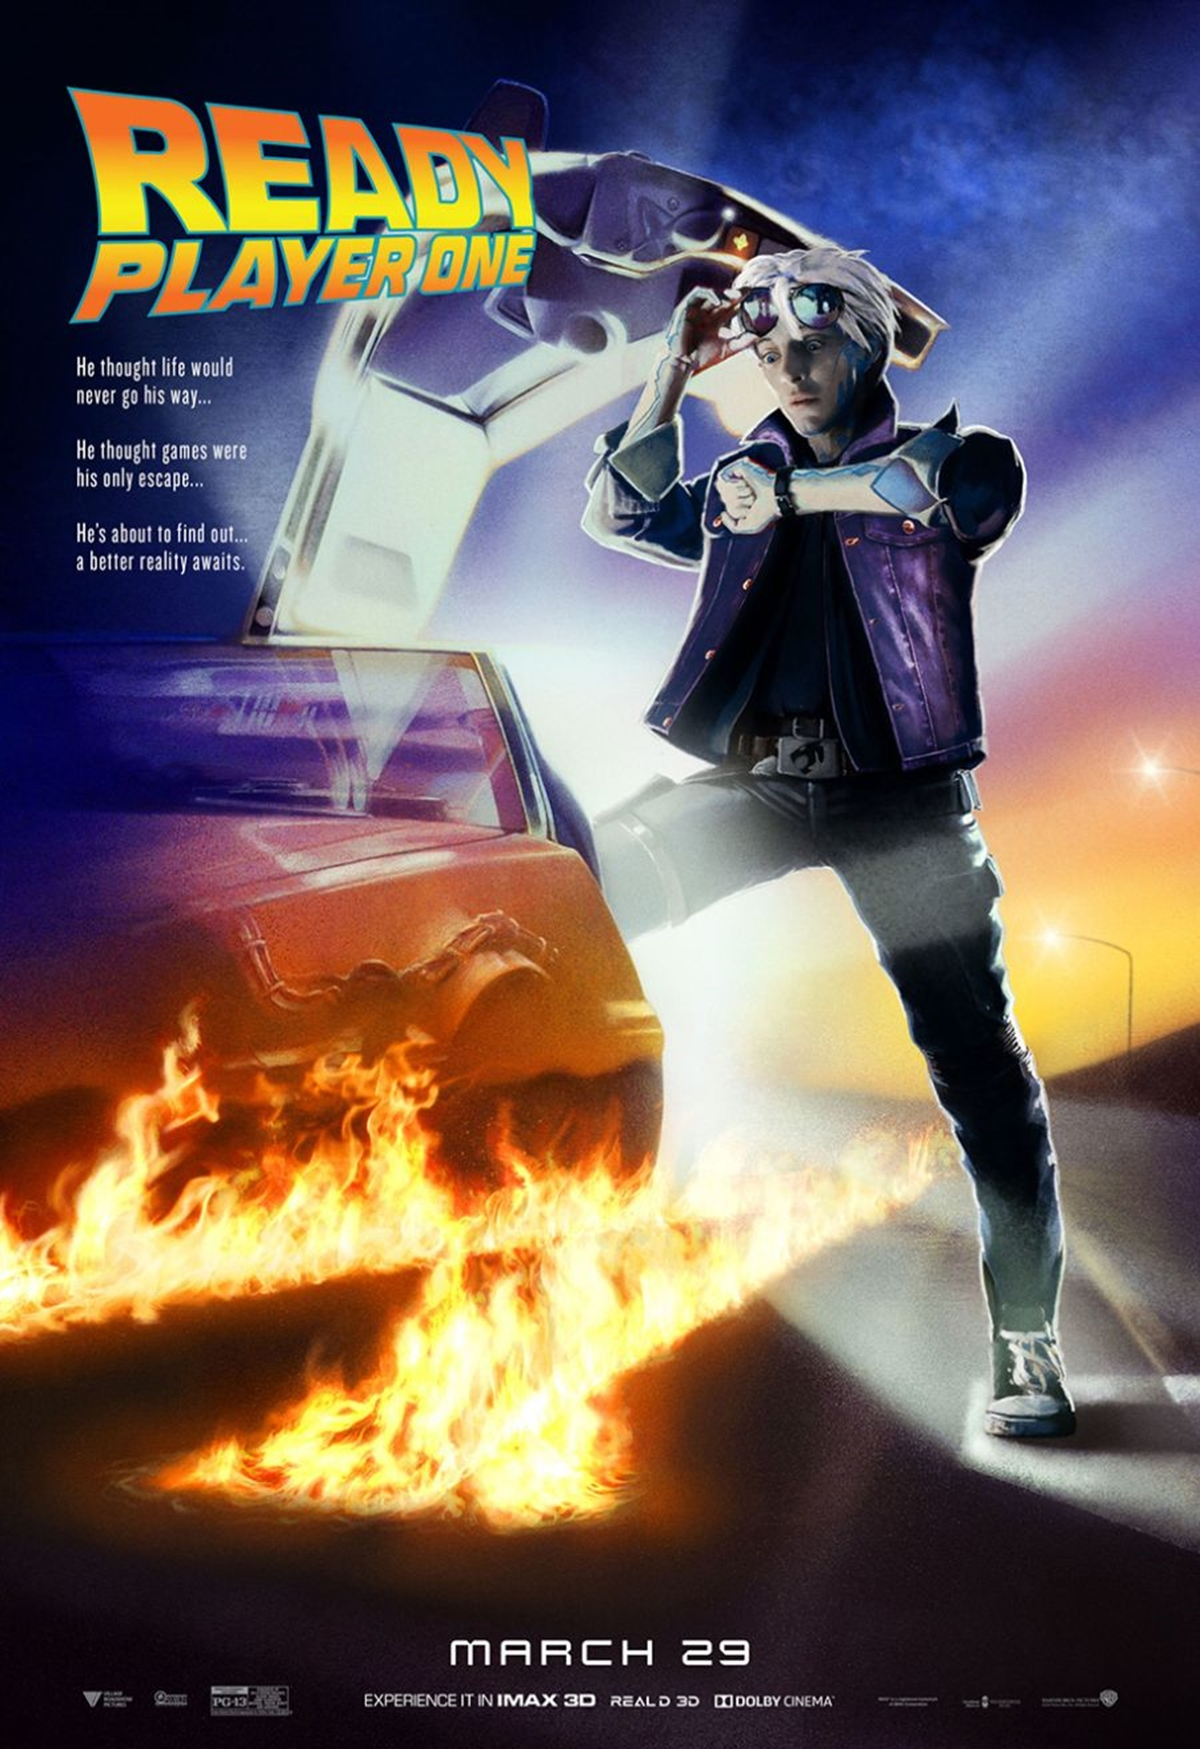 FUTURENEW 12 Classic Film Posters Are Recreated To Promote Spielberg's 'Ready Player One'